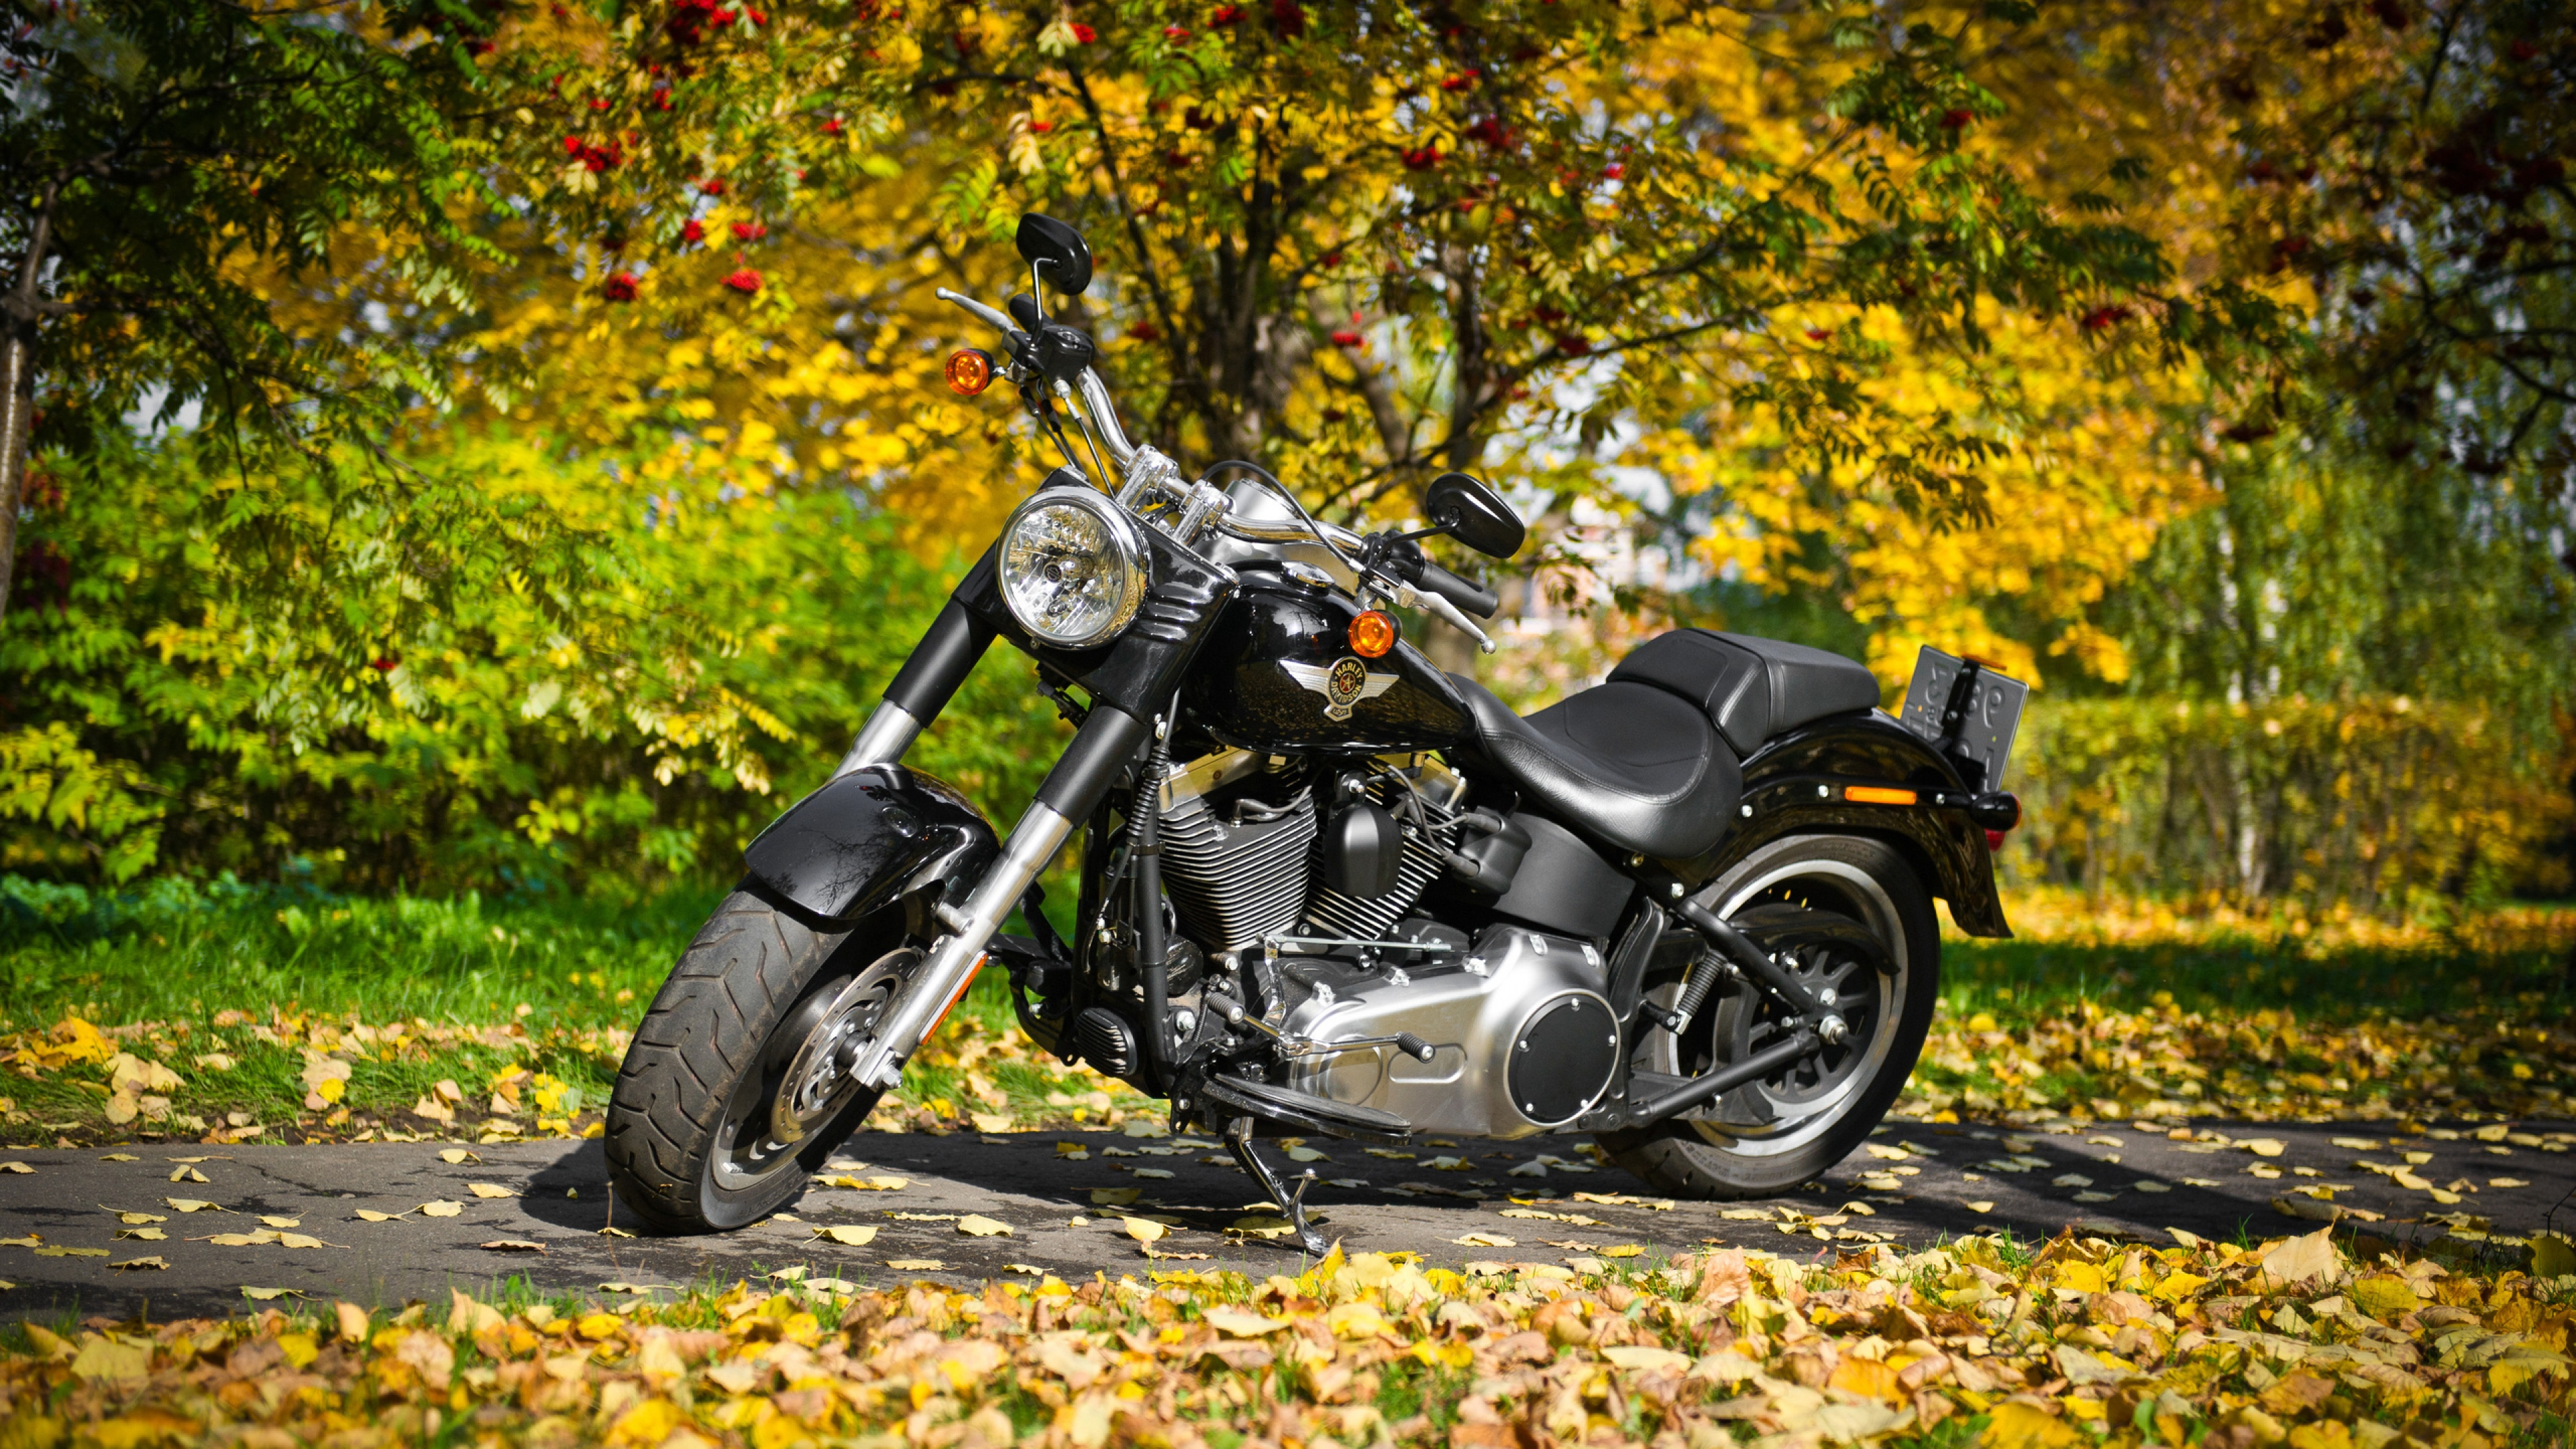 Background Images For Editing Hd Bike: Harley Davidson Motorcycle 2, HD Bikes, 4k Wallpapers